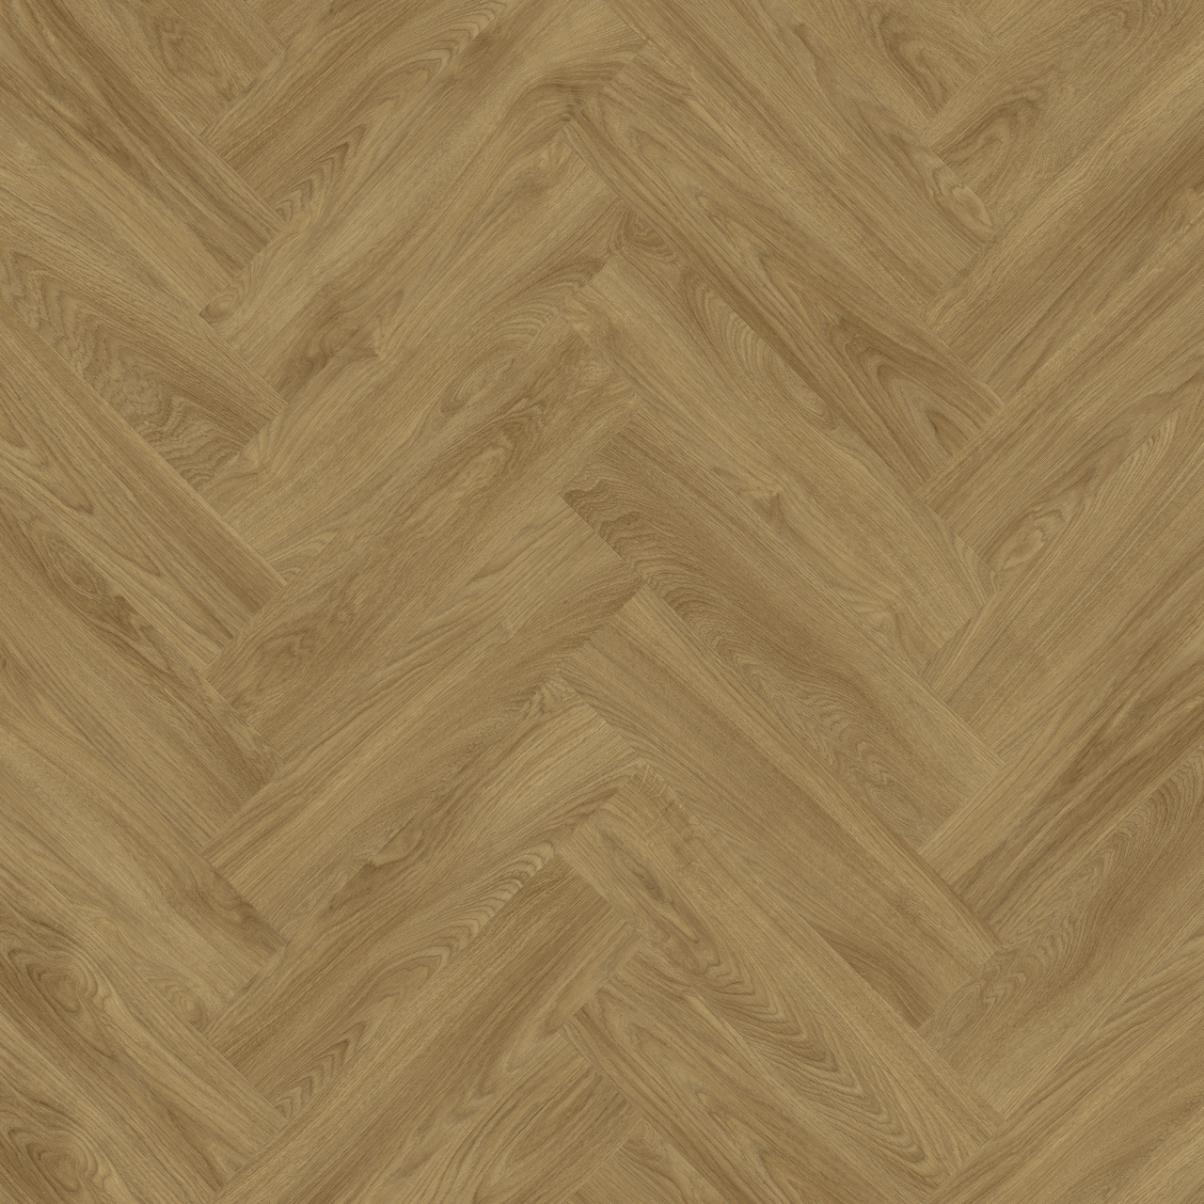 ПВХ  Модулео PARQUETRY SHORT Impress  51822 Laurel Oak (2,5мм-0,55мм)